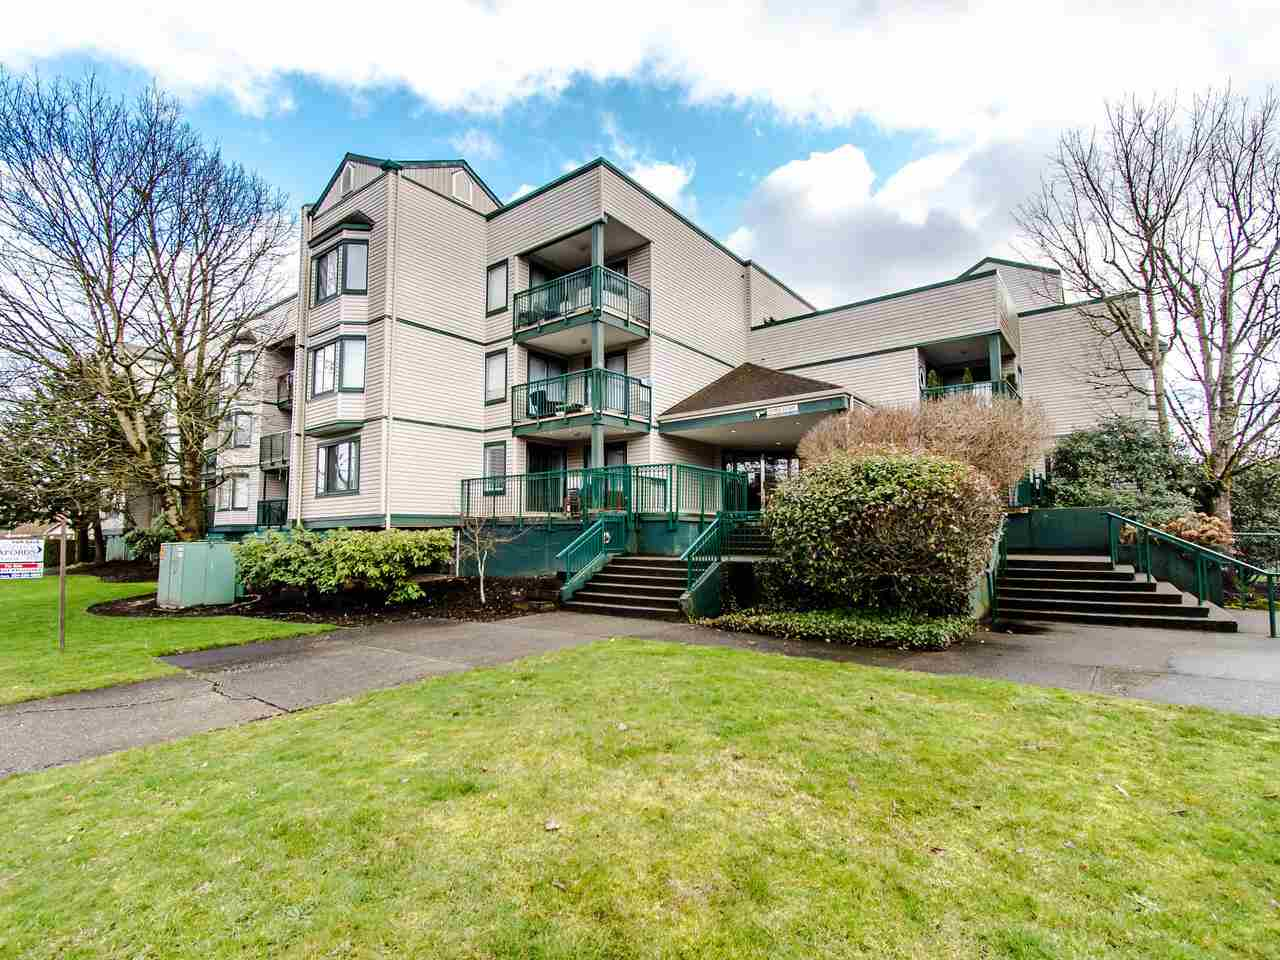 Investors welcome! GREAT TENANT with lease until May 2021! This updated 2 bedroom condo in downtown Langley area, close to shopping, schools. This is an end unit with a large sundeck over looking the parking lot on the quiet side of the building. Hurry and make your call today. 2 secured parking spots. Measurements from BC Floor Plans.